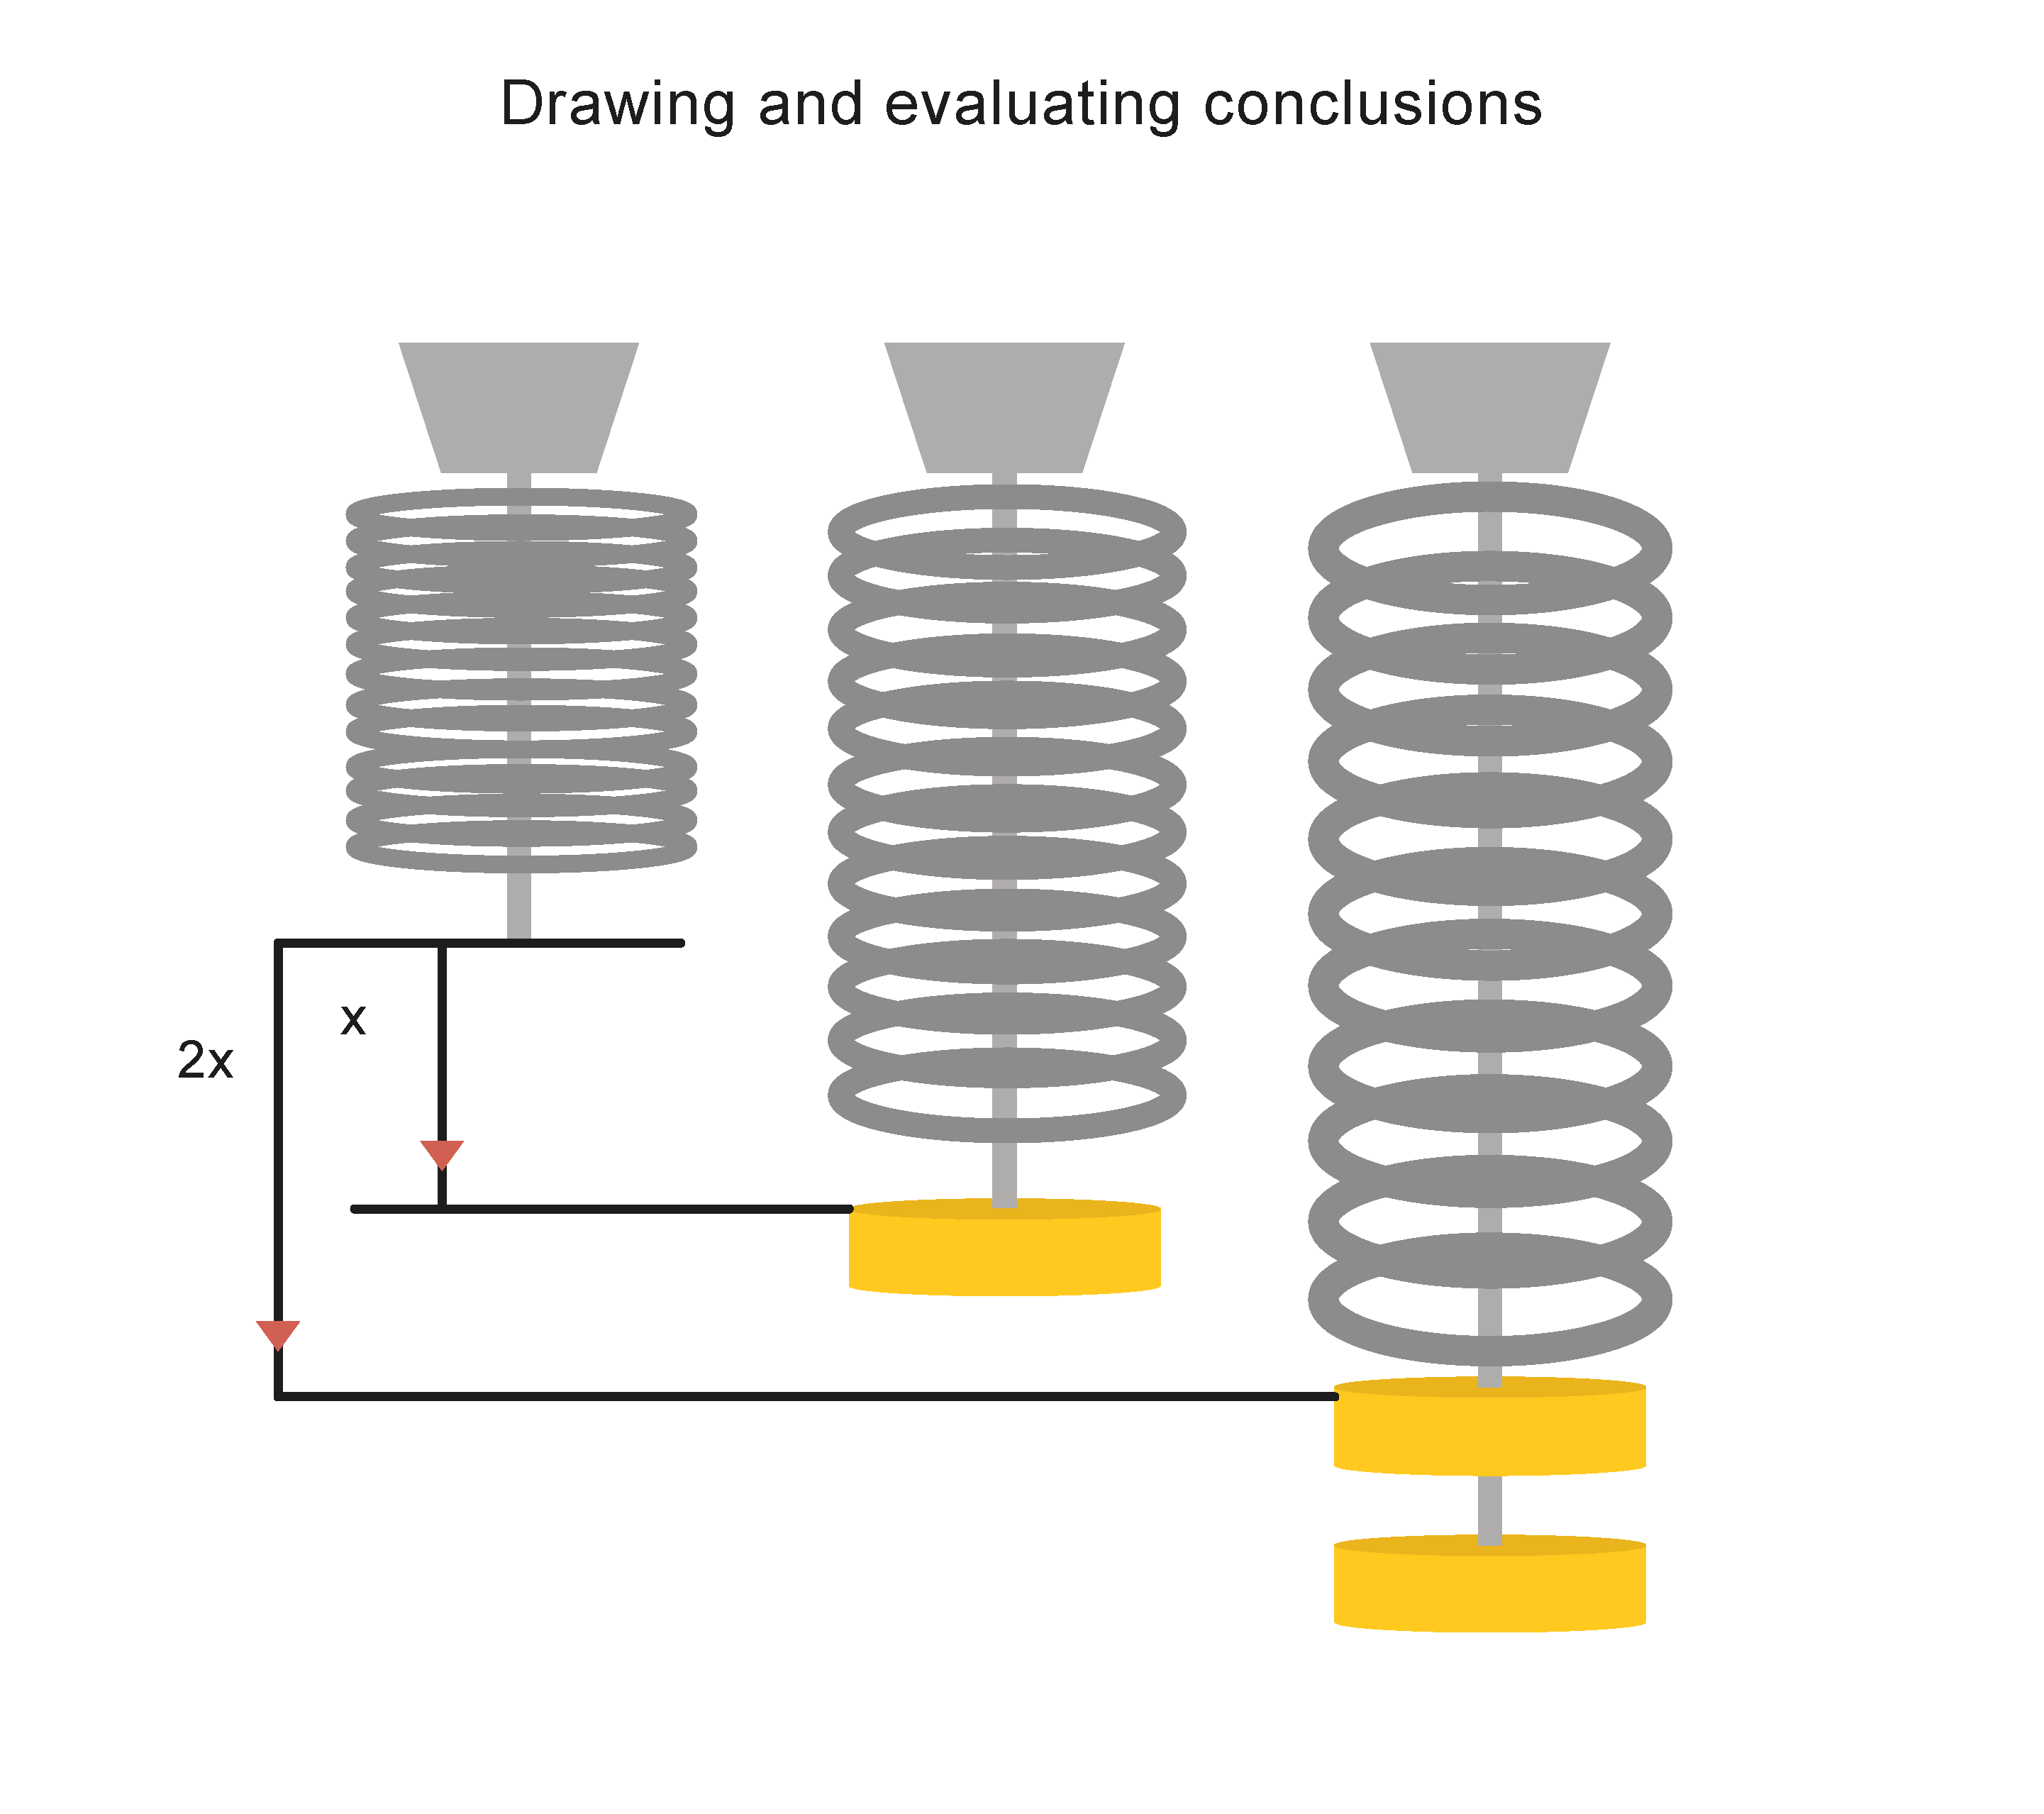 Image showing three springs. Spring 1 has no mass and is short. Spring 2 has 1 mass on it and has been extended. Spring three has 2 masses on it had been extended even further.